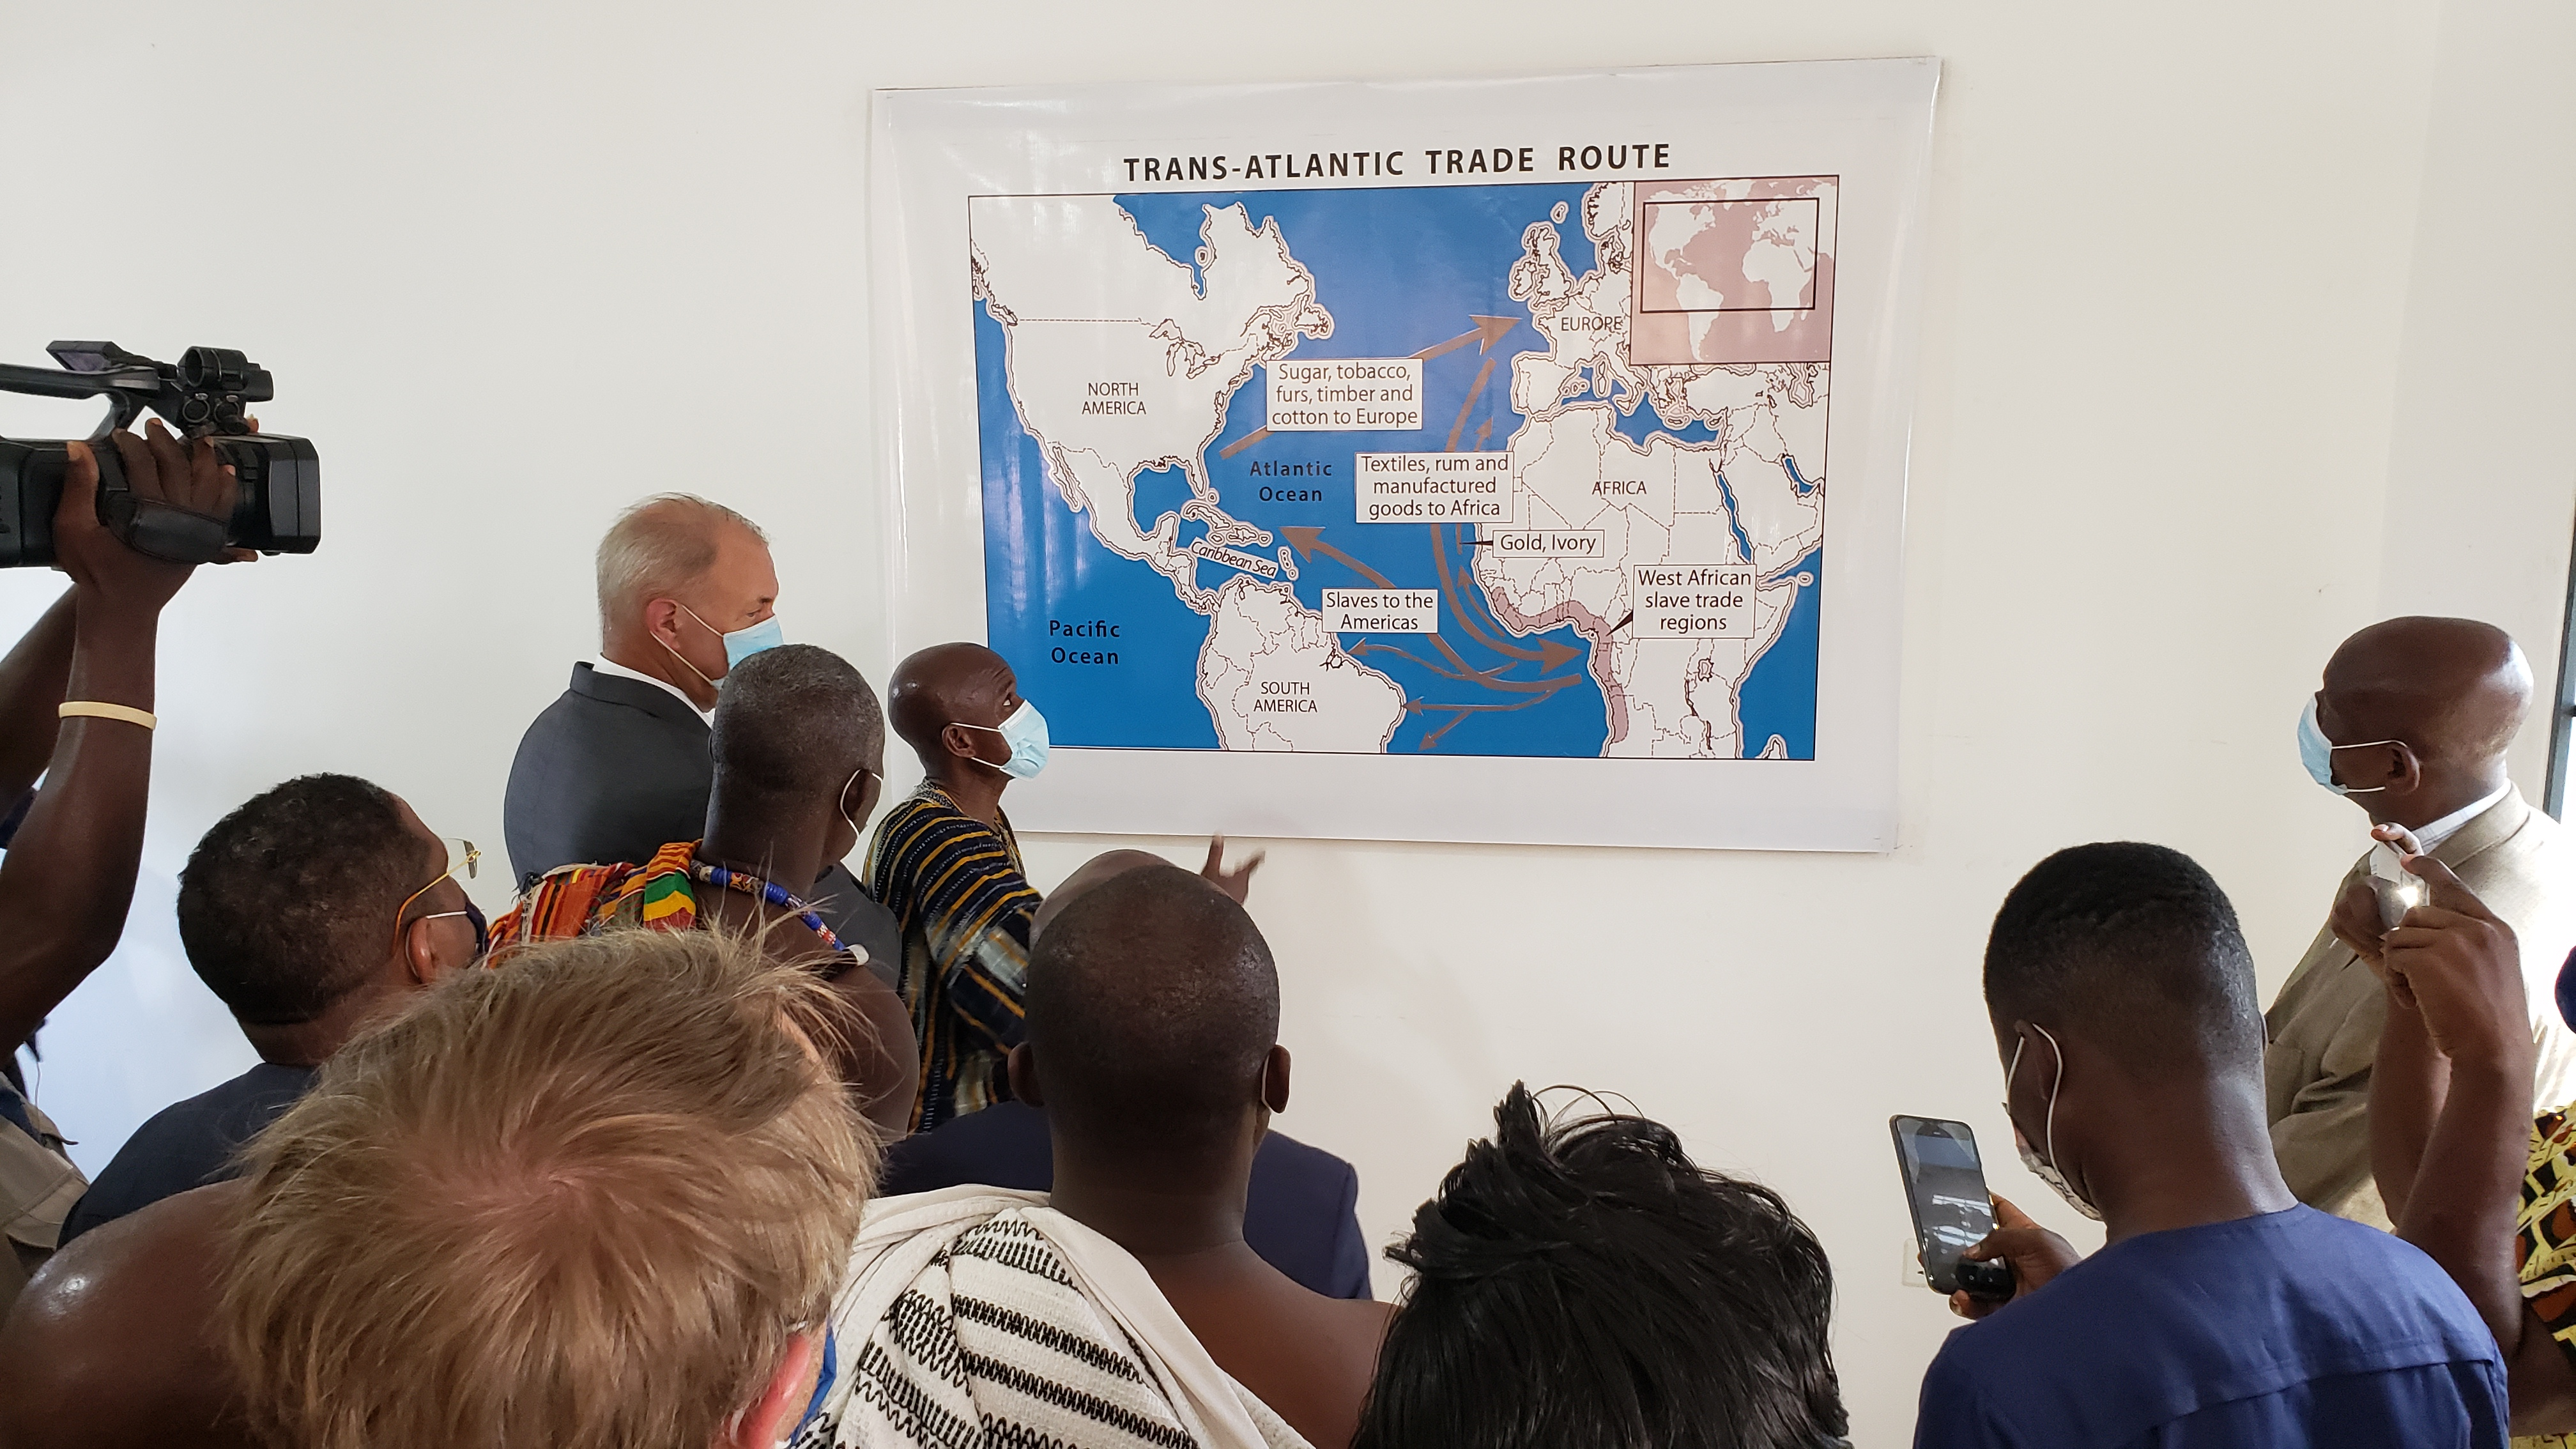 UNESCO and partners rehabilitate Ussher Fort Slave Museum and Documentary Centre in Accra